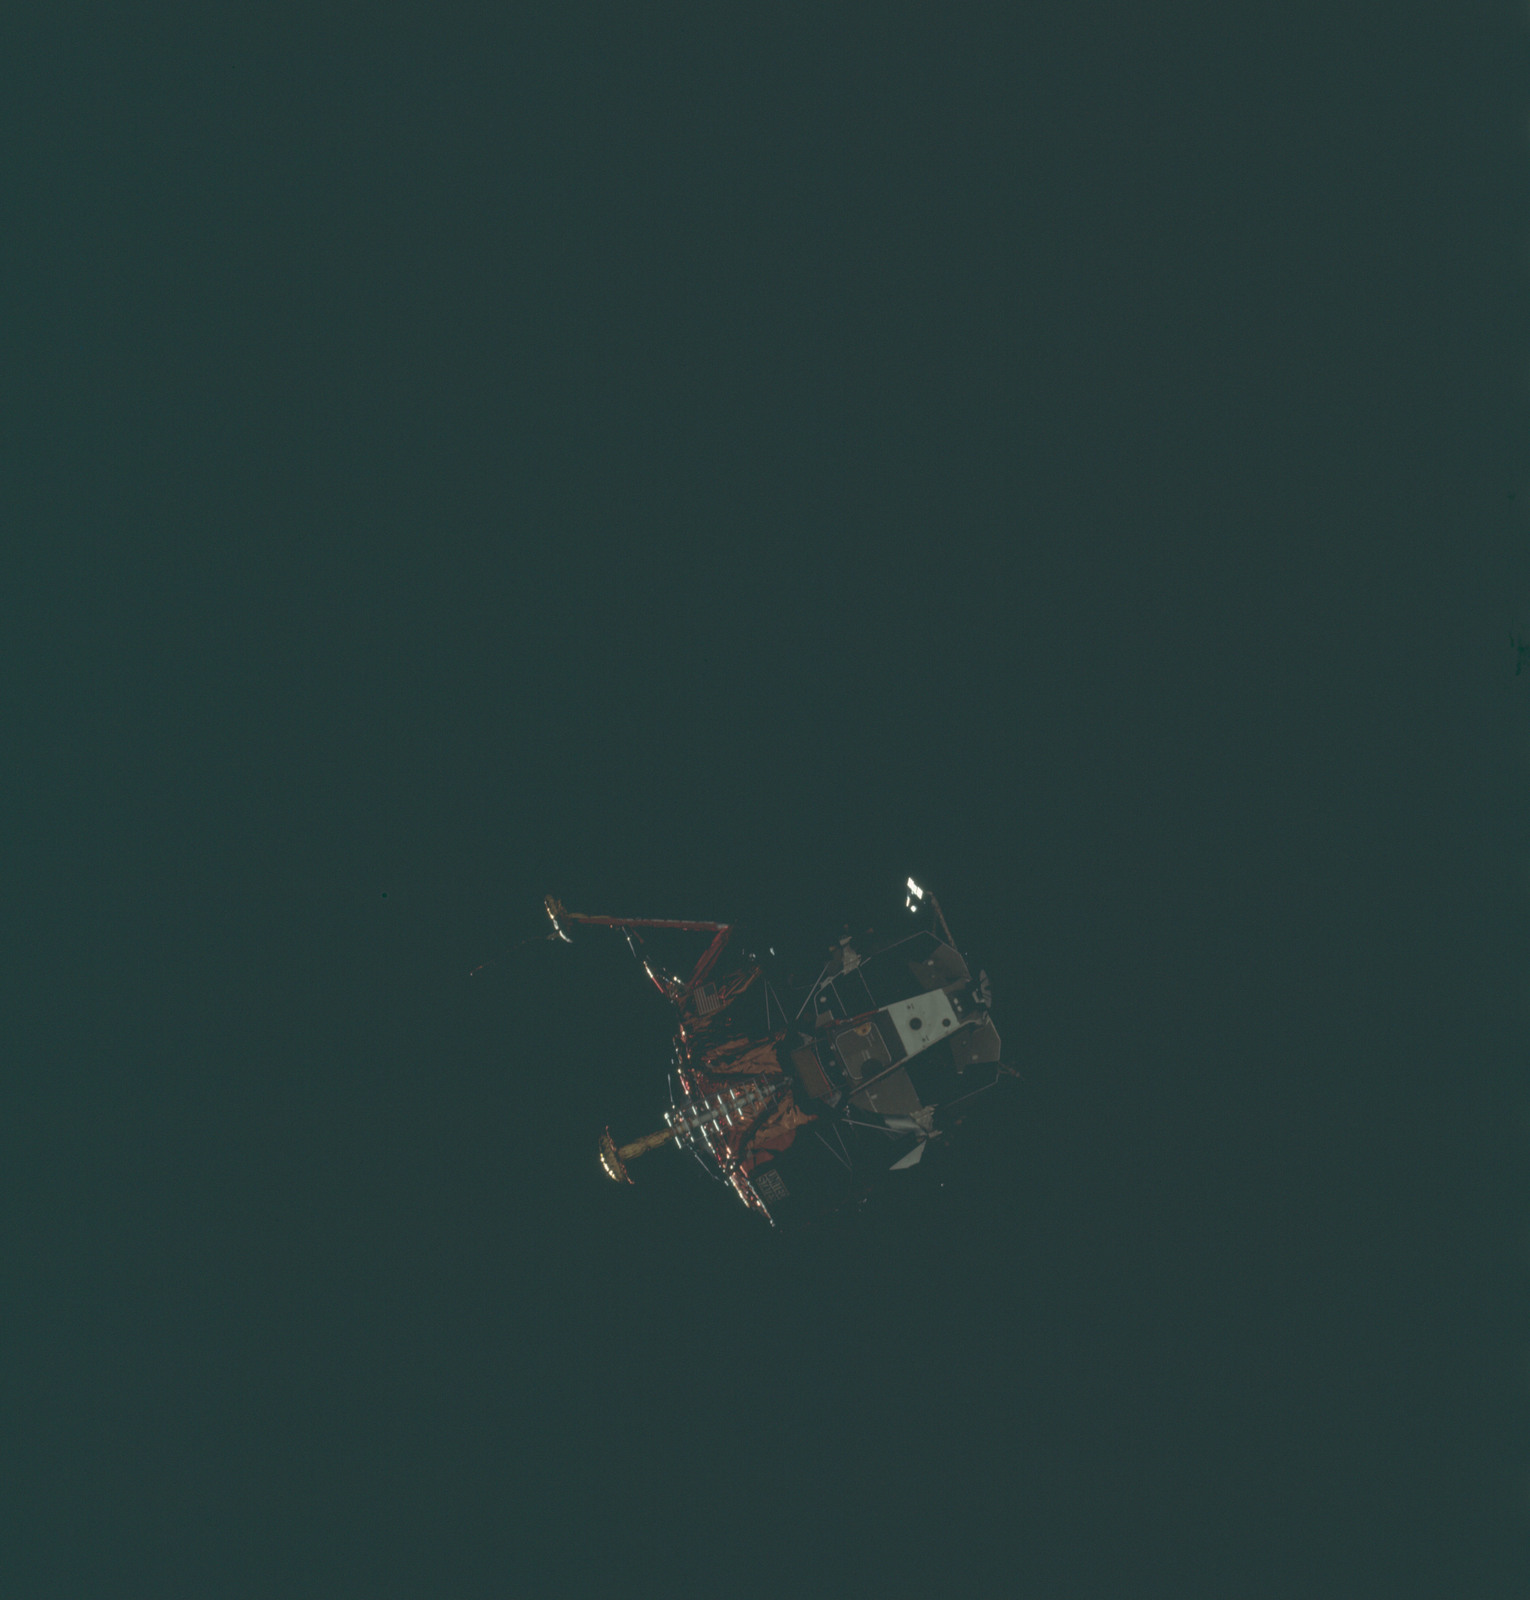 AS11-44-6587 - Apollo 11 - Apollo 11 Mission image - View of Lunar Module separation from the Command Module